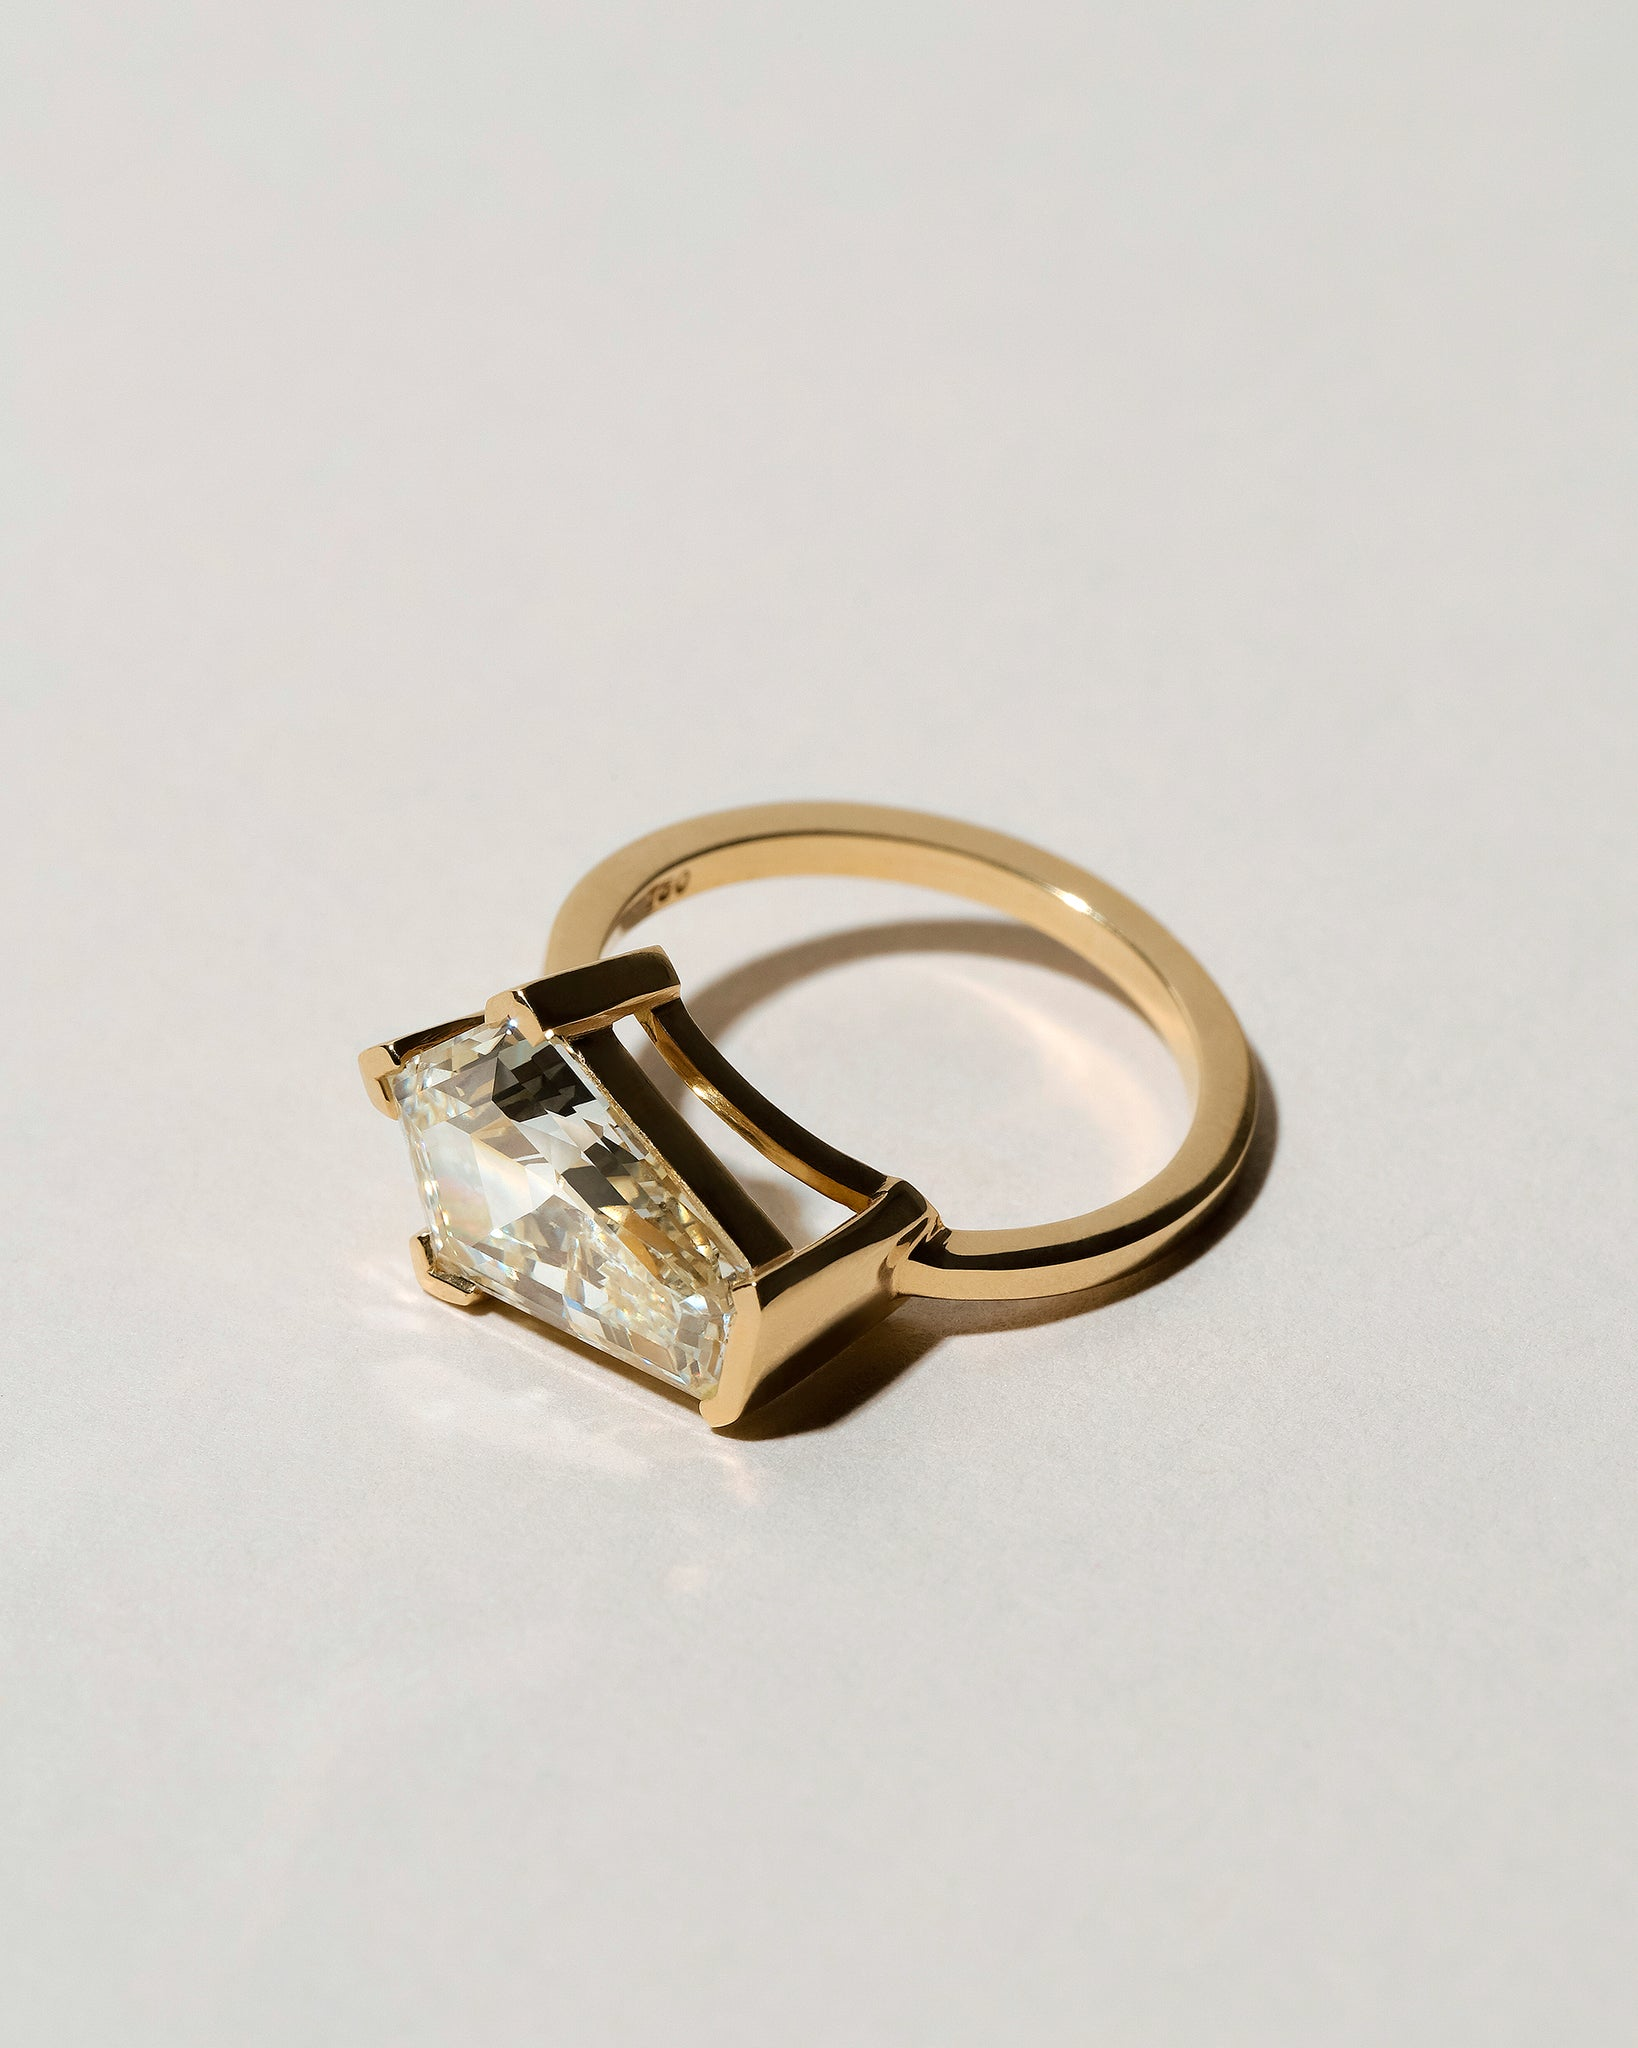 Modified Step Cut Diamond Ring on light color background.